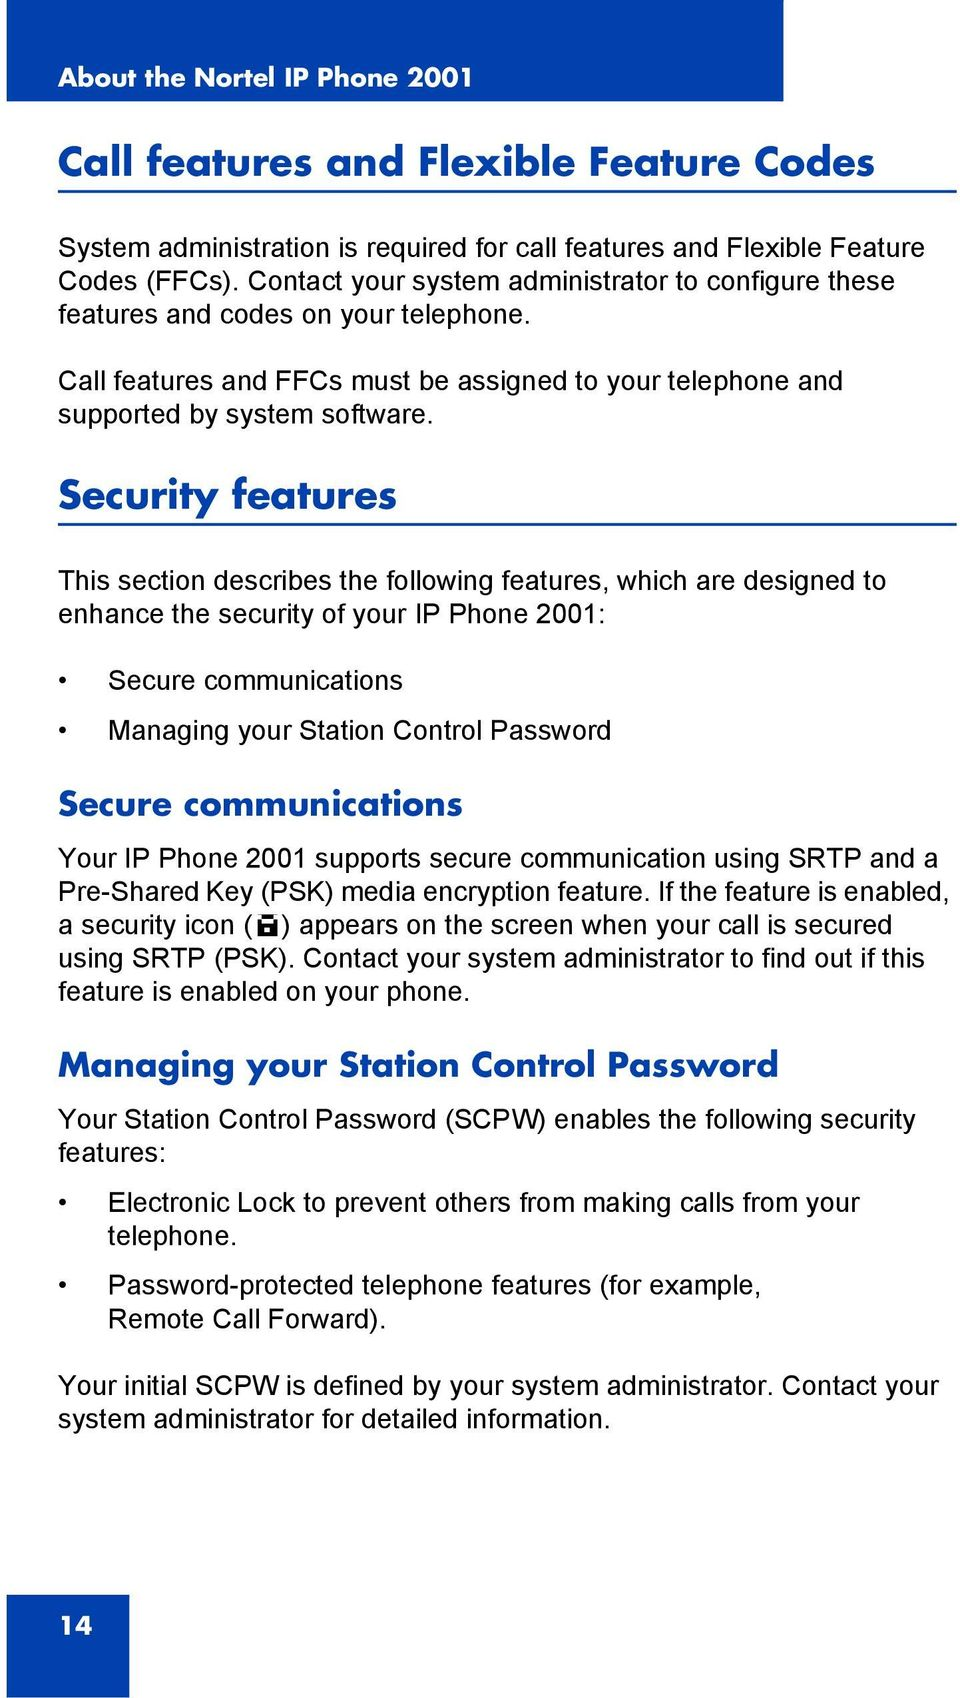 Security features This section describes the following features, which are designed to enhance the security of your IP Phone 2001: Secure communications Managing your Station Control Password Secure